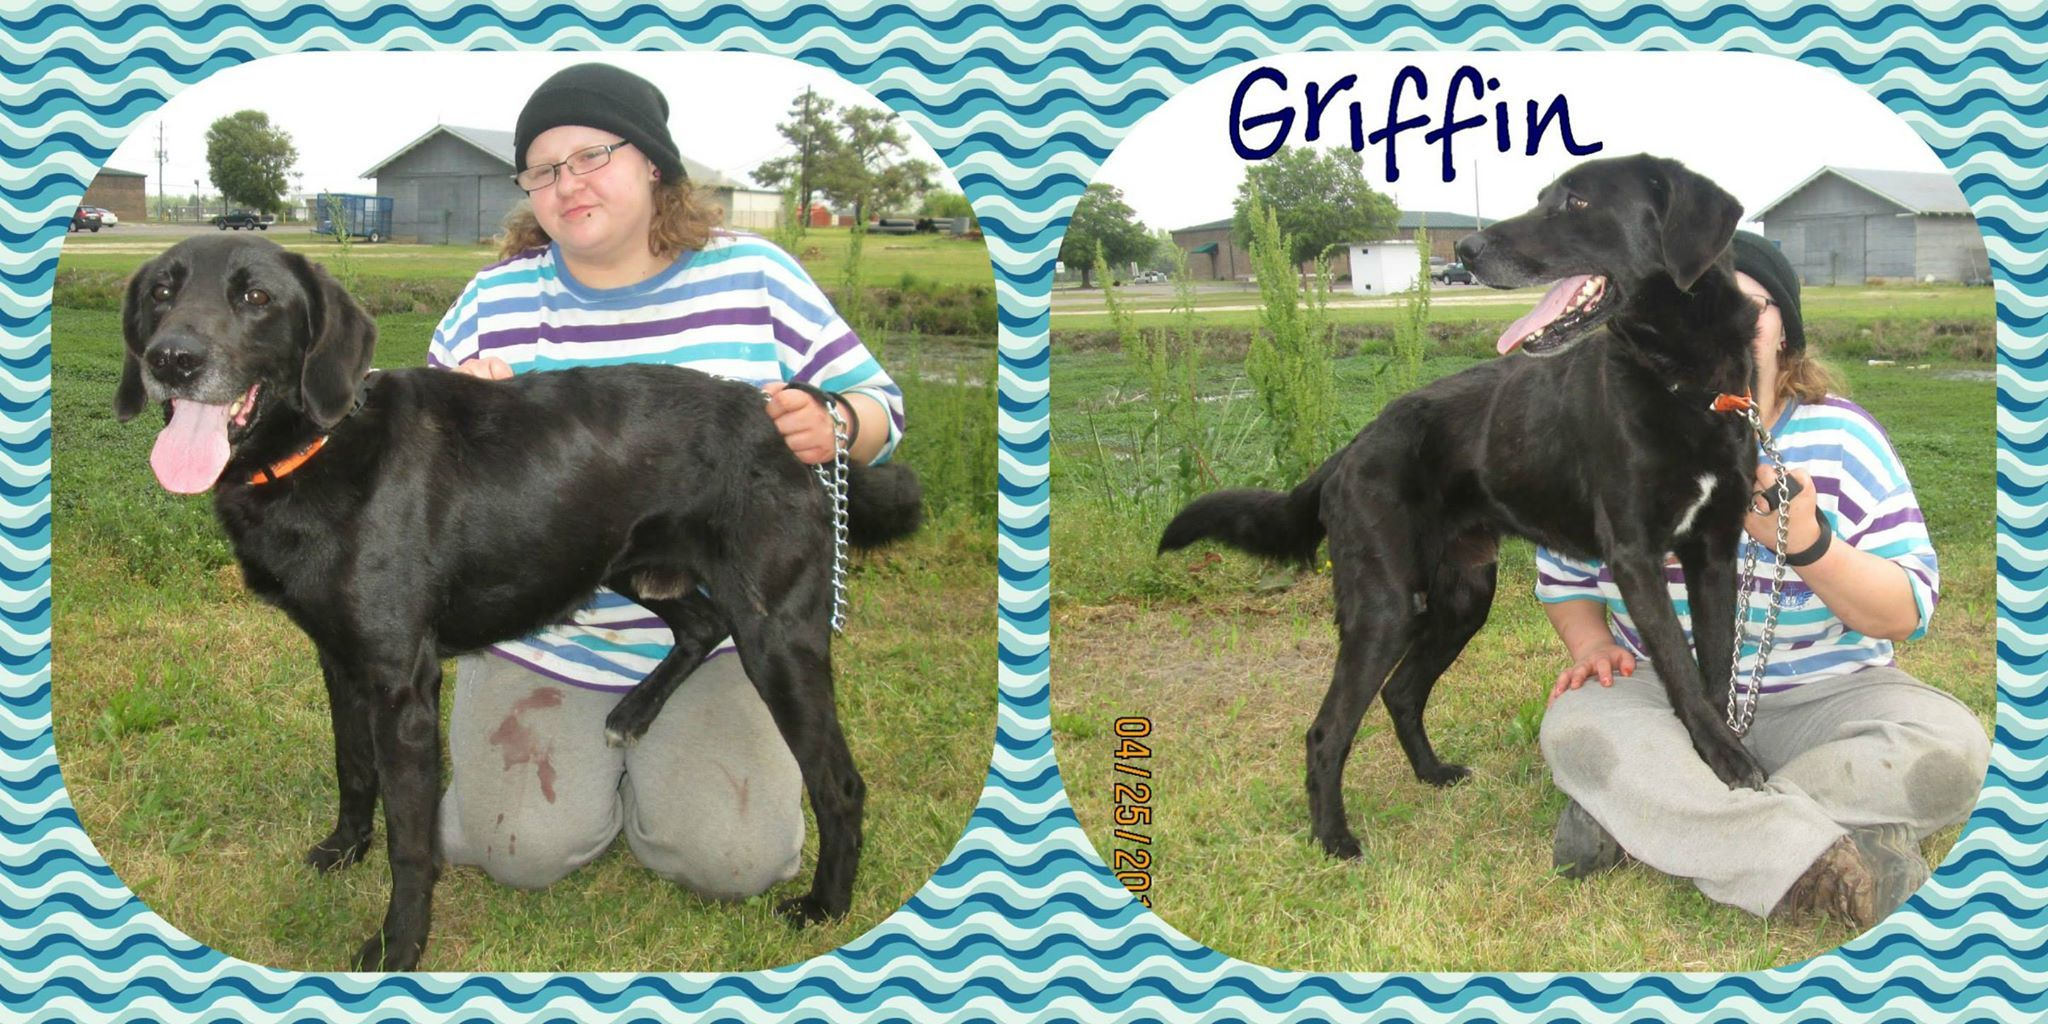 URGENT Marion County - Great LAB BOY GRIFFIN #140510 in Mullins, SC On next to be Killed due to being here the longest & overcrowding. Ok with dogs but is alpha male. No cats! - Griffin has his leg ripped open. ok with dogs but is alpha male. His best with females. No cats! ID #140510 https://pledgie.com/campaigns/25247 ID #140510 https://www.facebook.com/PawsToTheRescueAtMarionCountyAnimalShelter/photos/a.181901978588650.34200.181656871946494/527193204059524/?type=3&theater